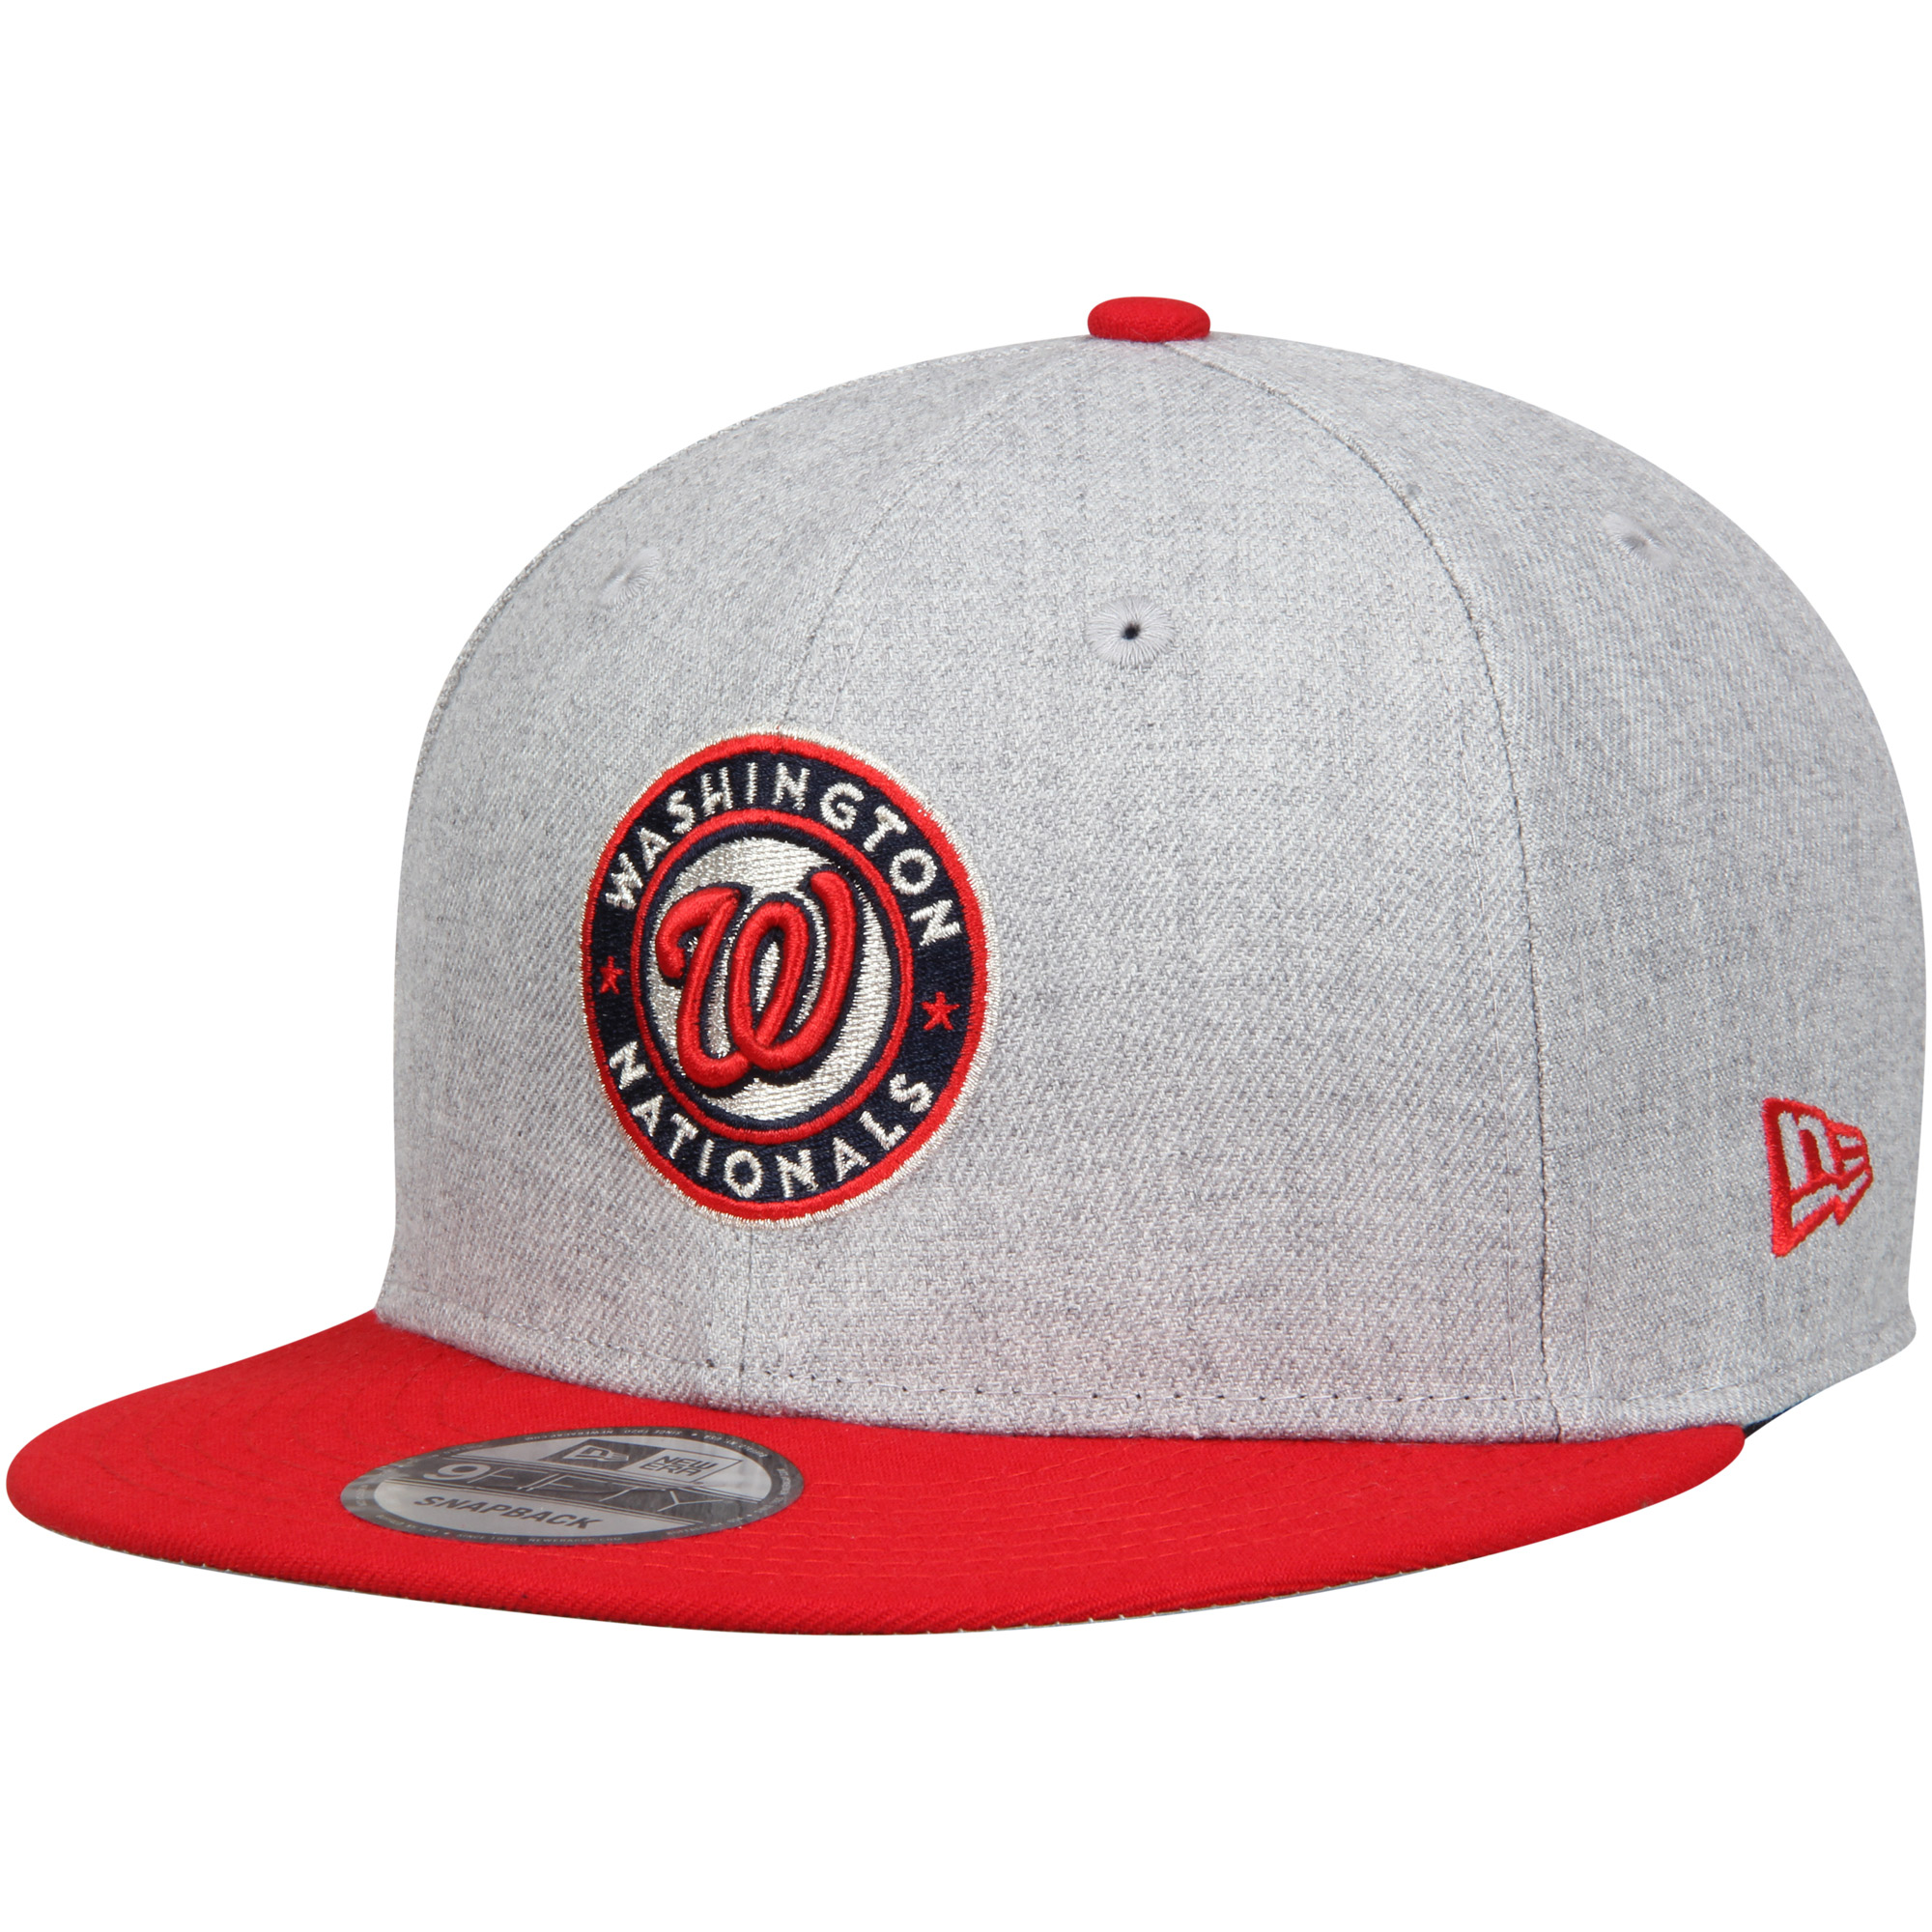 Bryce Harper Washington Nationals New Era Player Designed Program Harper 9FIFTY Hat - Heathered Gray/Red - OSFA